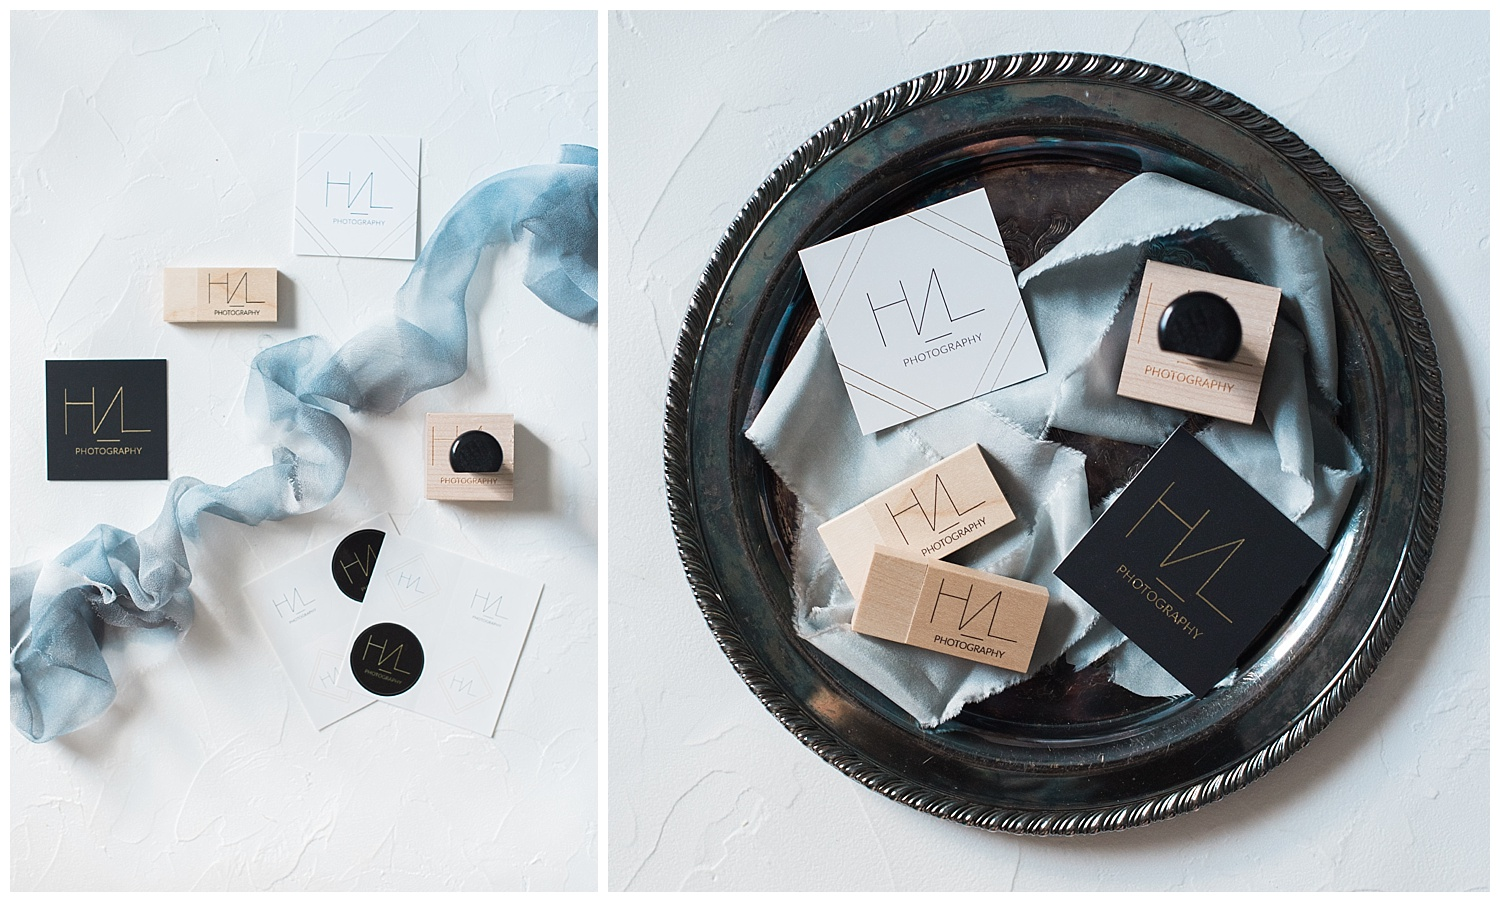 products and packaging for photographers